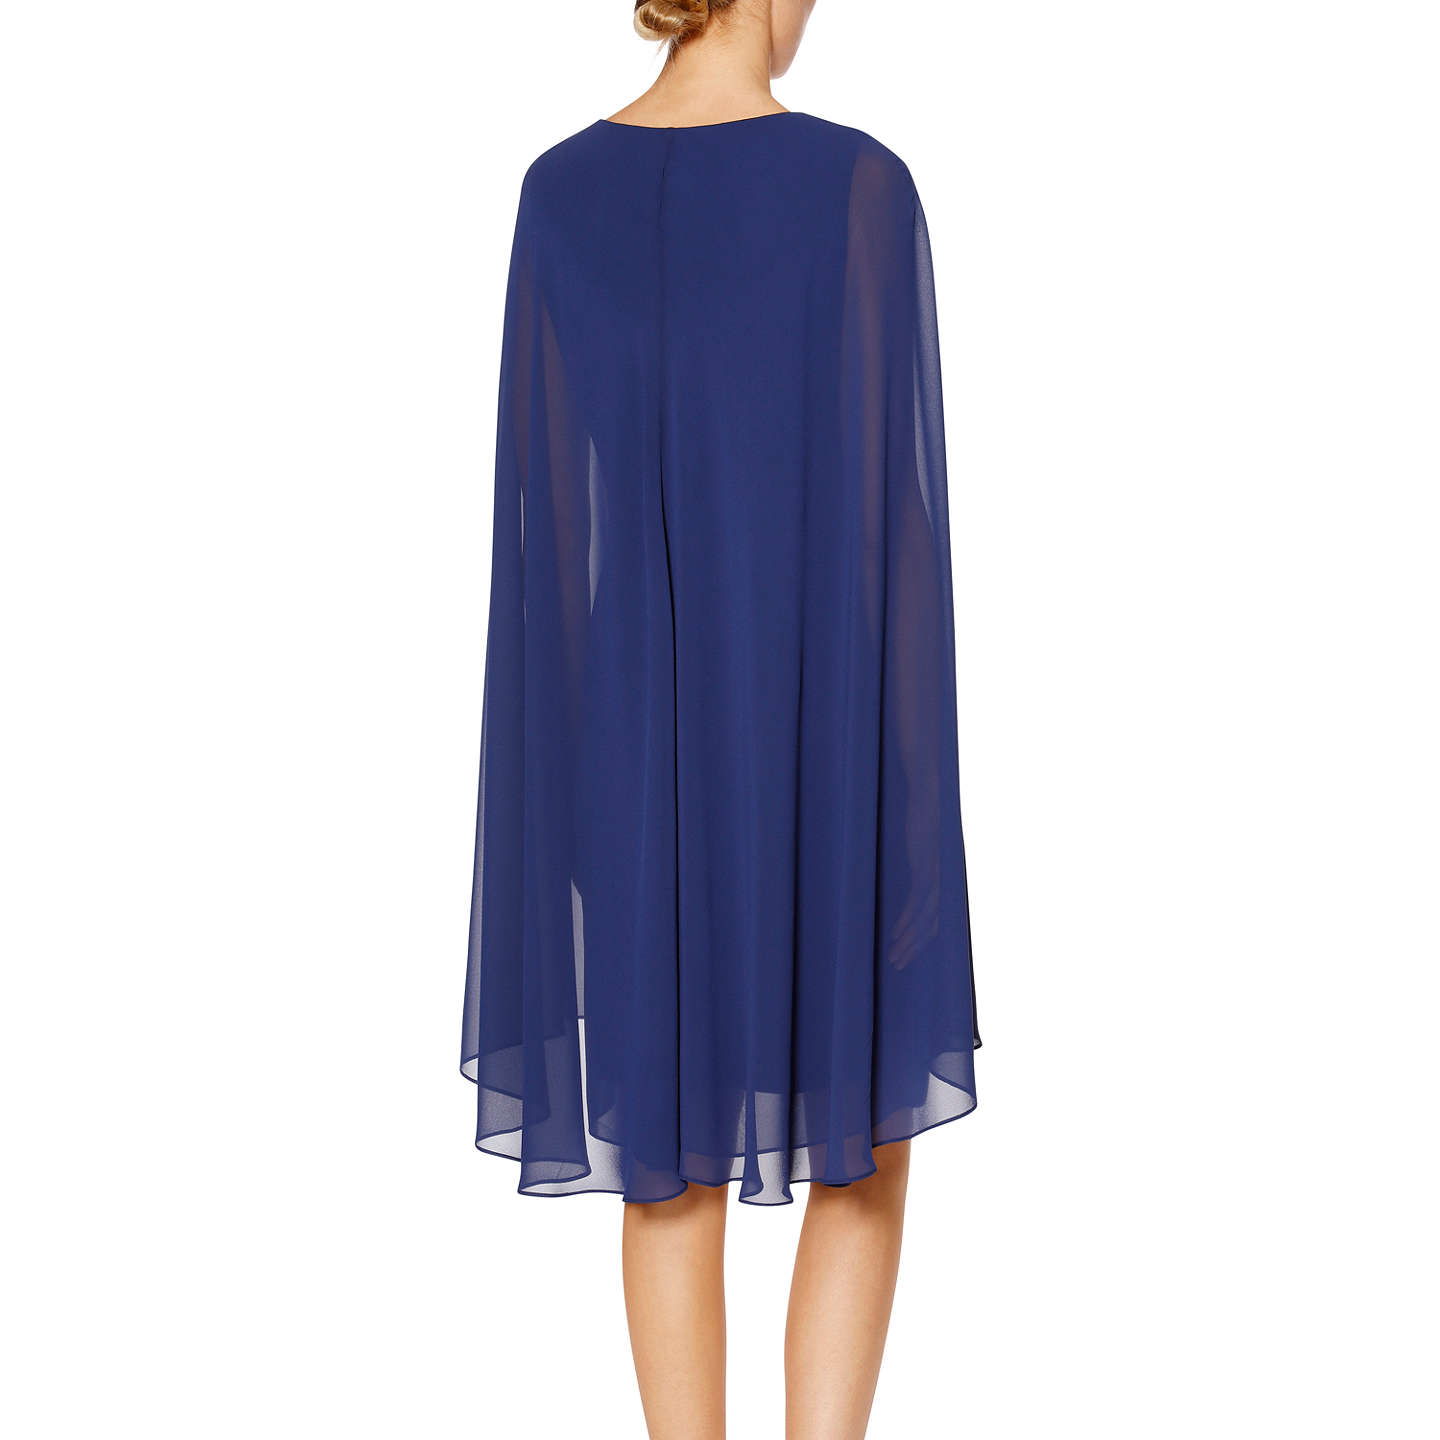 BuyGina Bacconi Nora Cape Dress, Navy, 14 Online at johnlewis.com